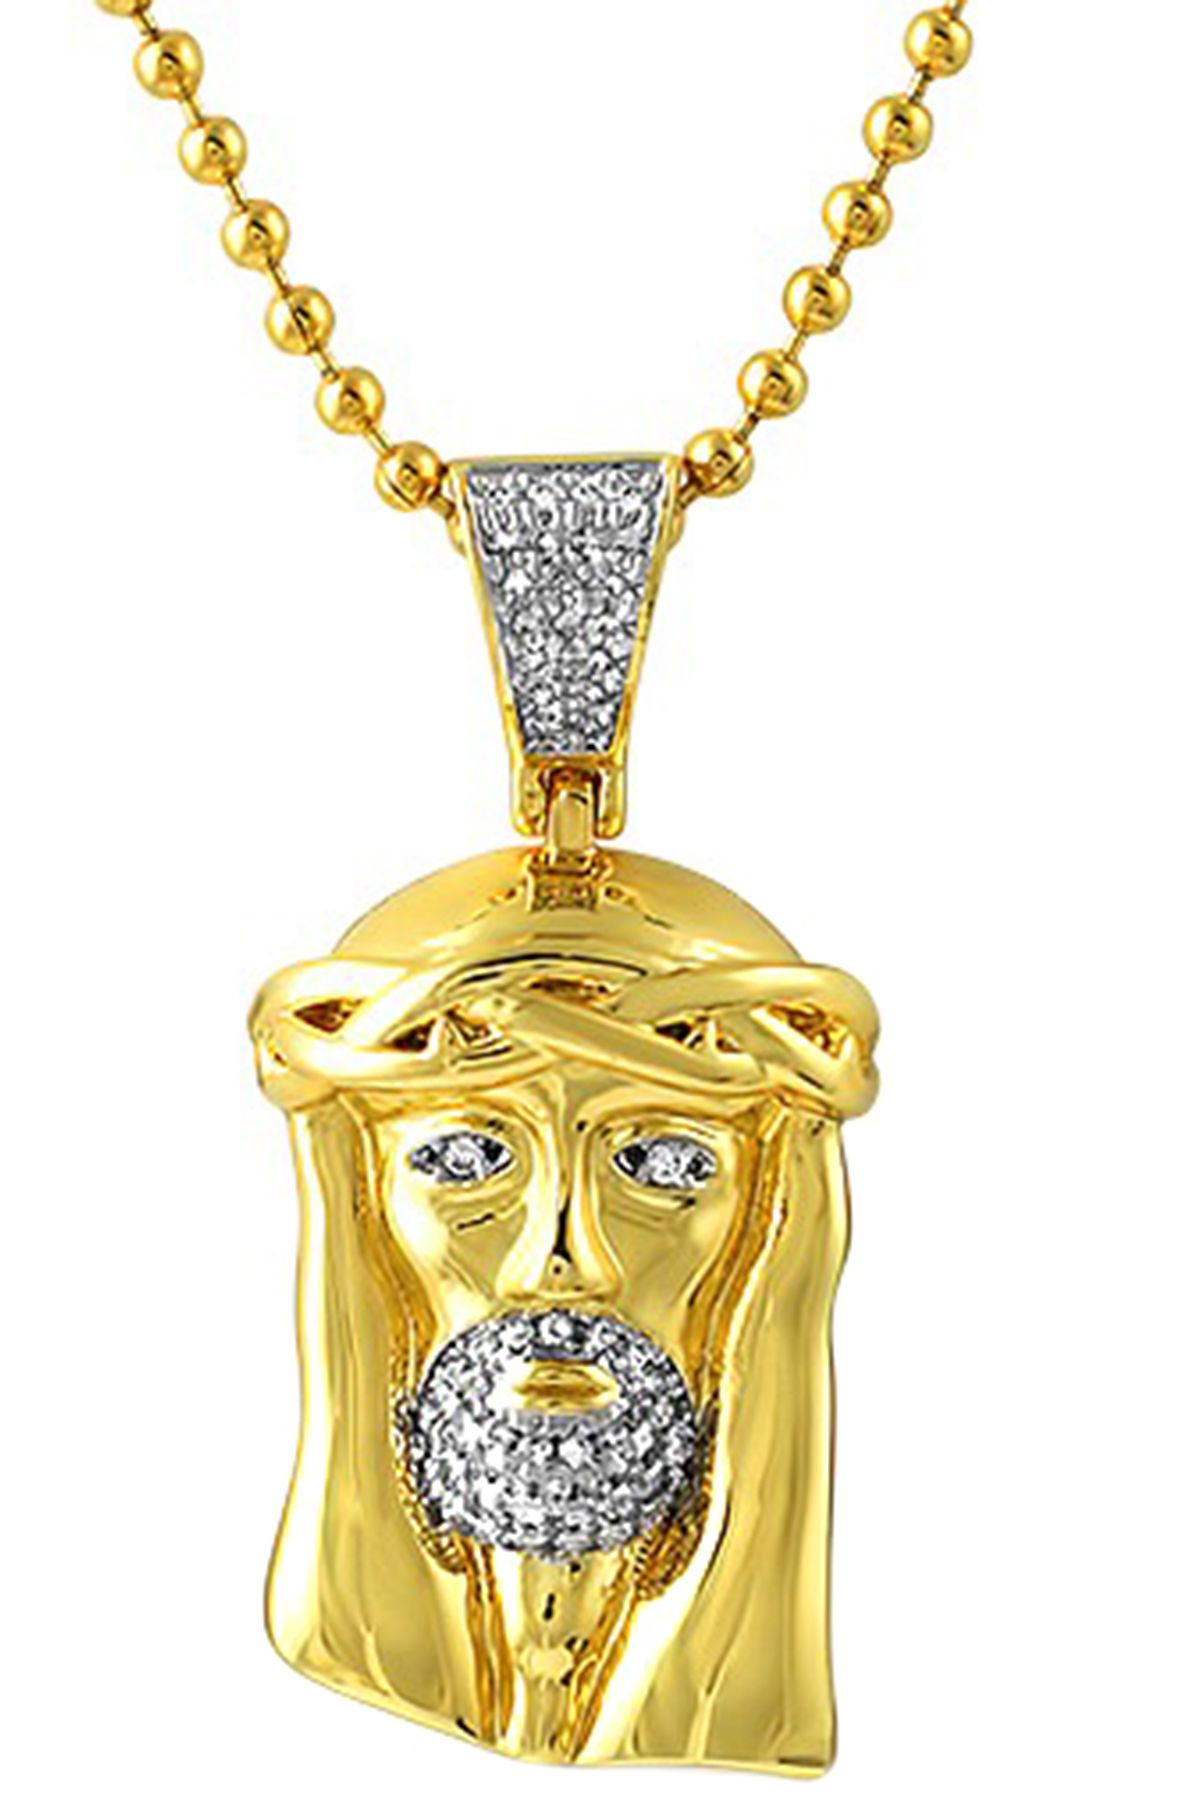 H h b necklace polished gold micro jesus pendant gold for What is gold polished jewelry